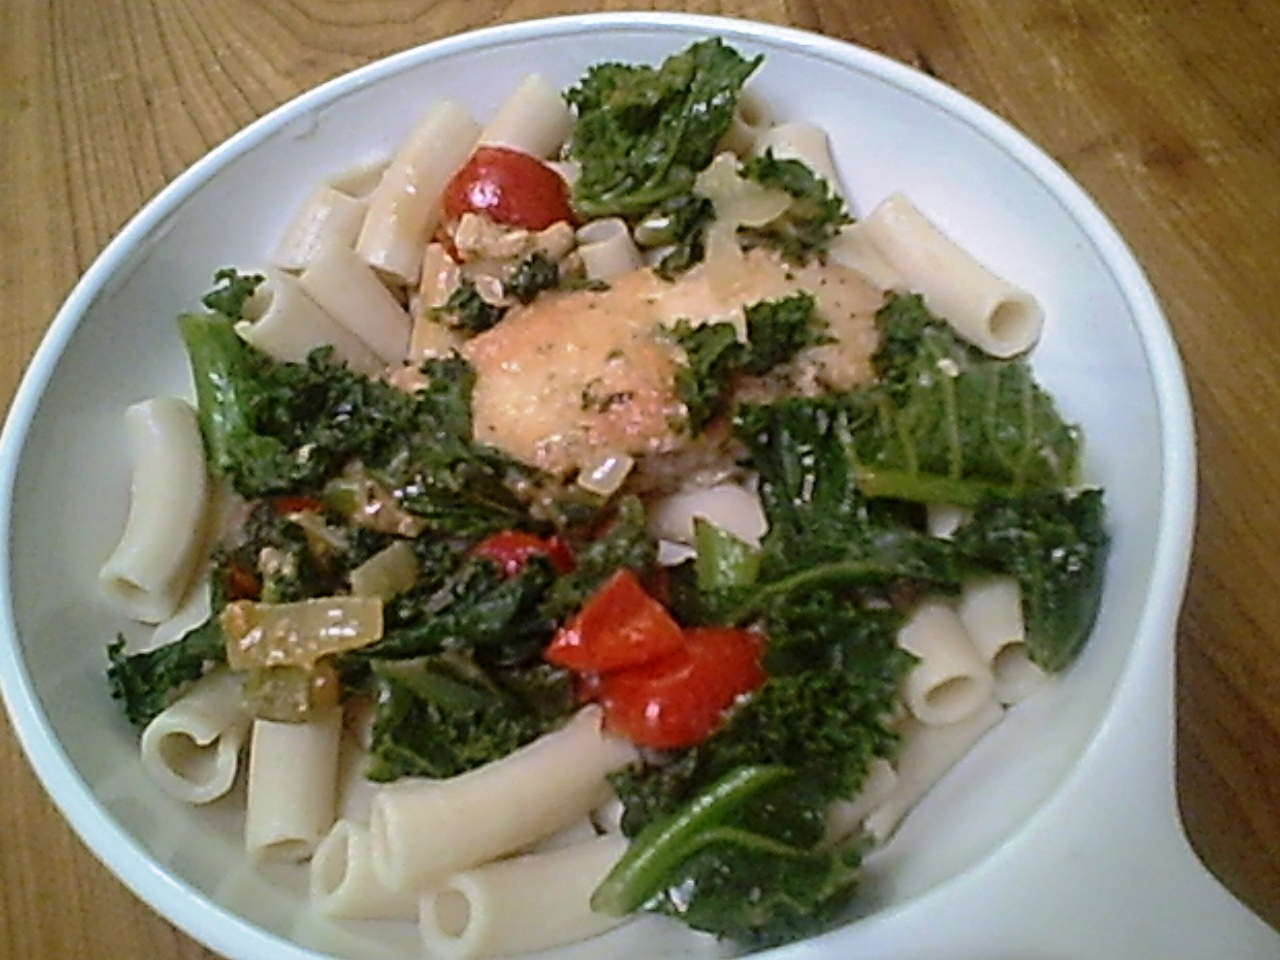 Chicken and Penne with Kale and Tomatoes for an Easy Chicken Dinner